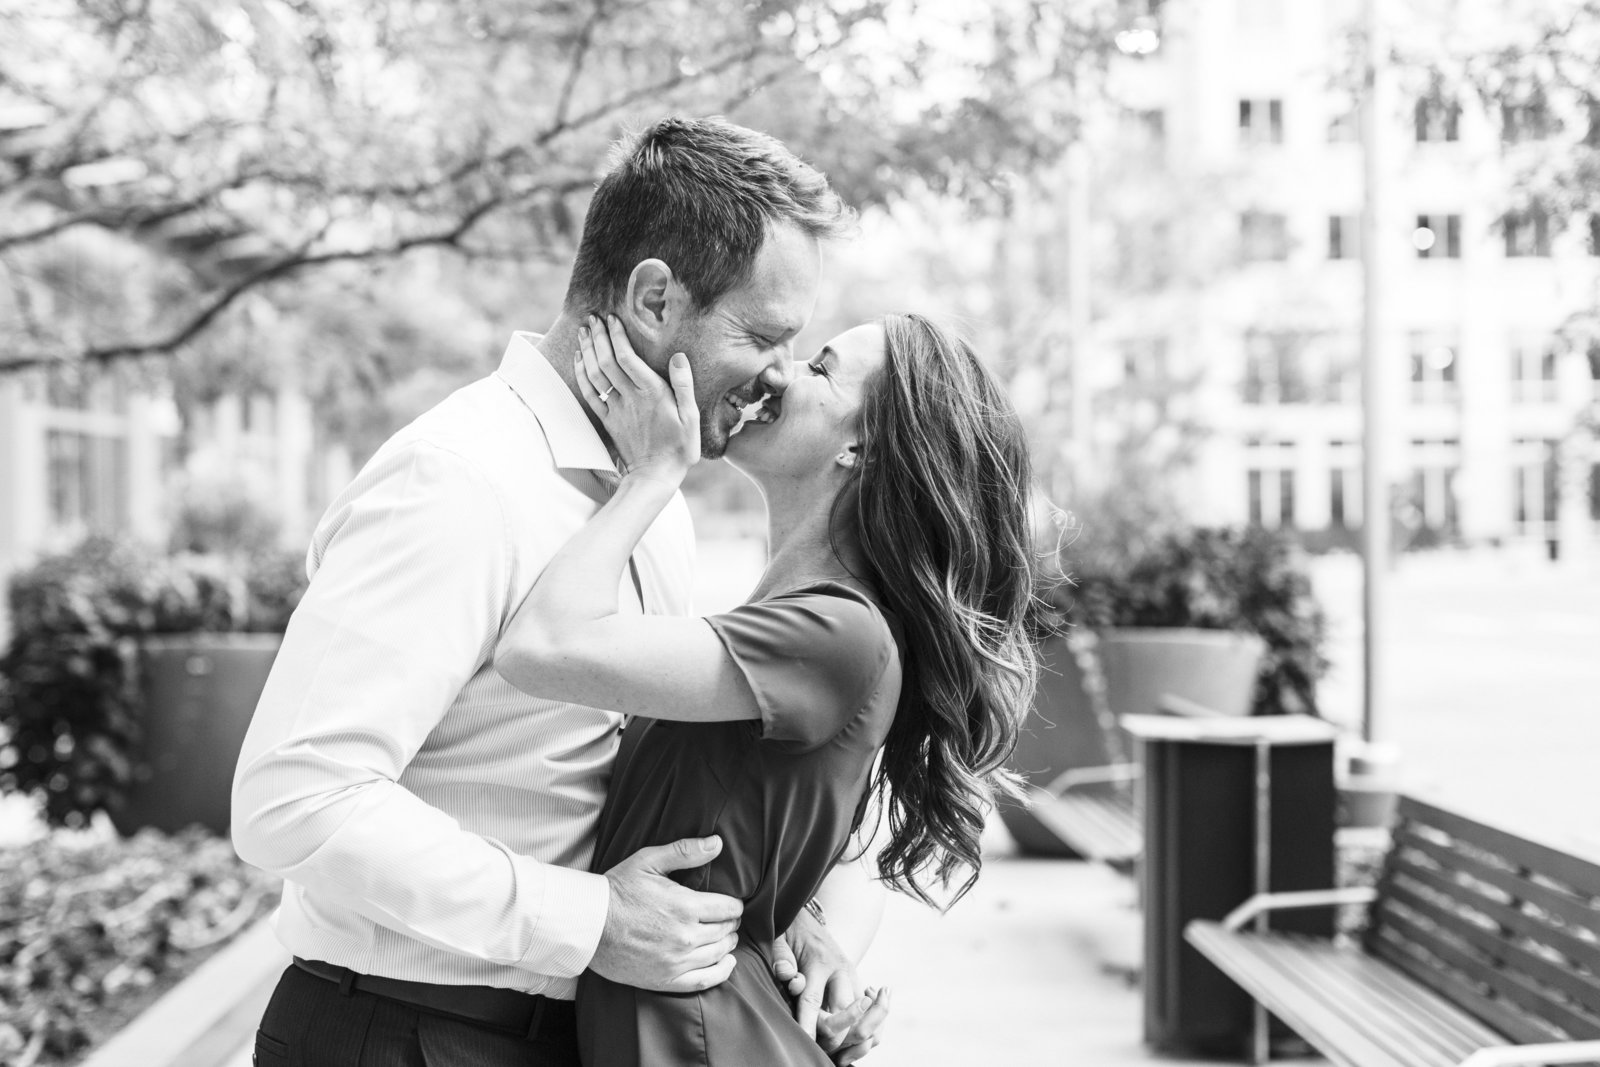 Jessi-And-Zach-Photography-Colorado-Wedding-Photographer-Nevada-Wedding-Photographer-Nevada-Engagement-Photographer_18